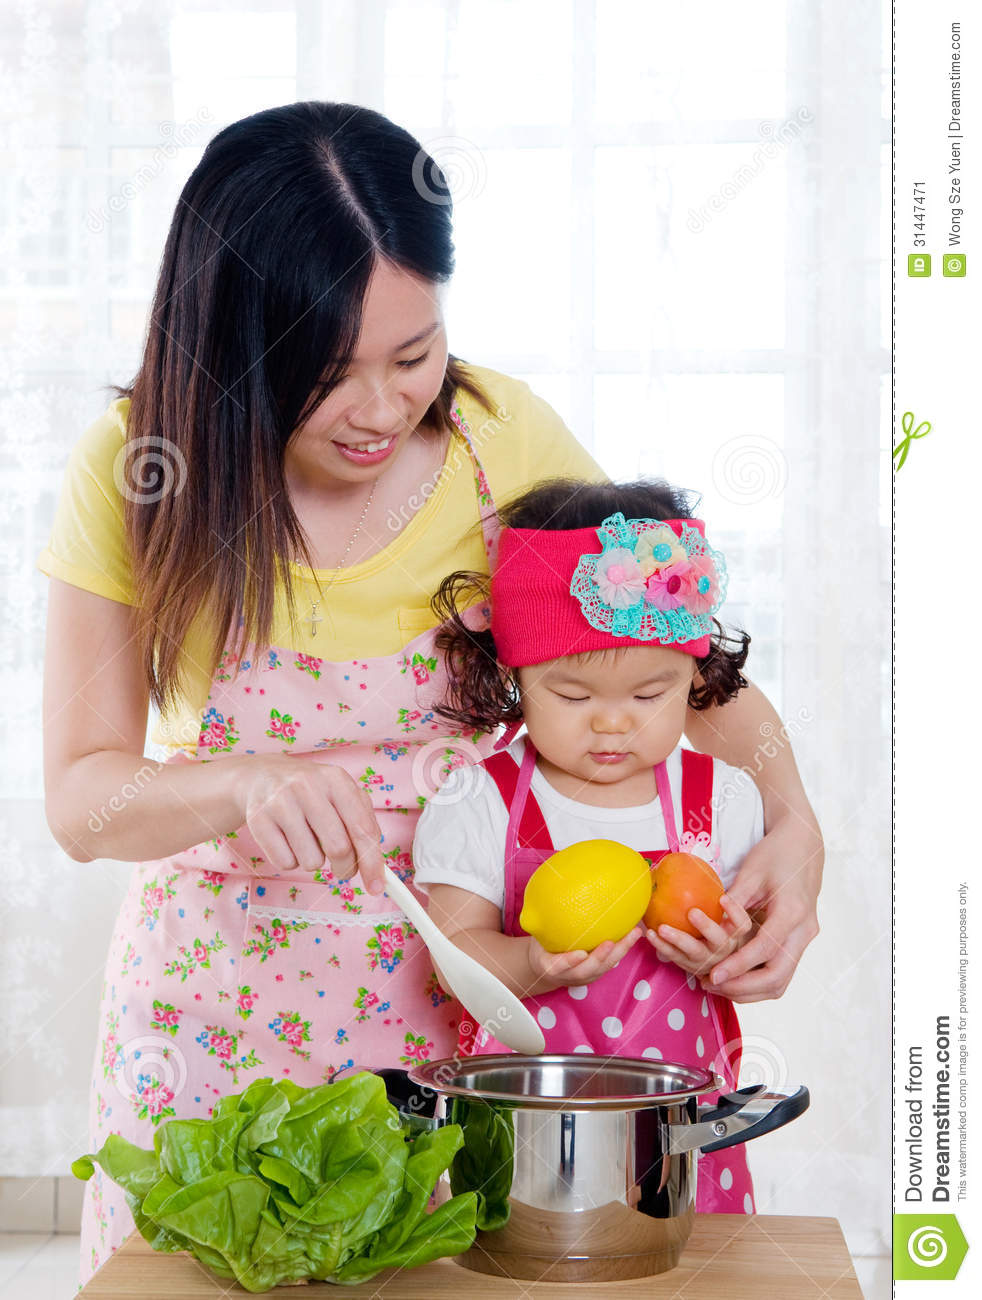 Japanese mother kitchen pandy